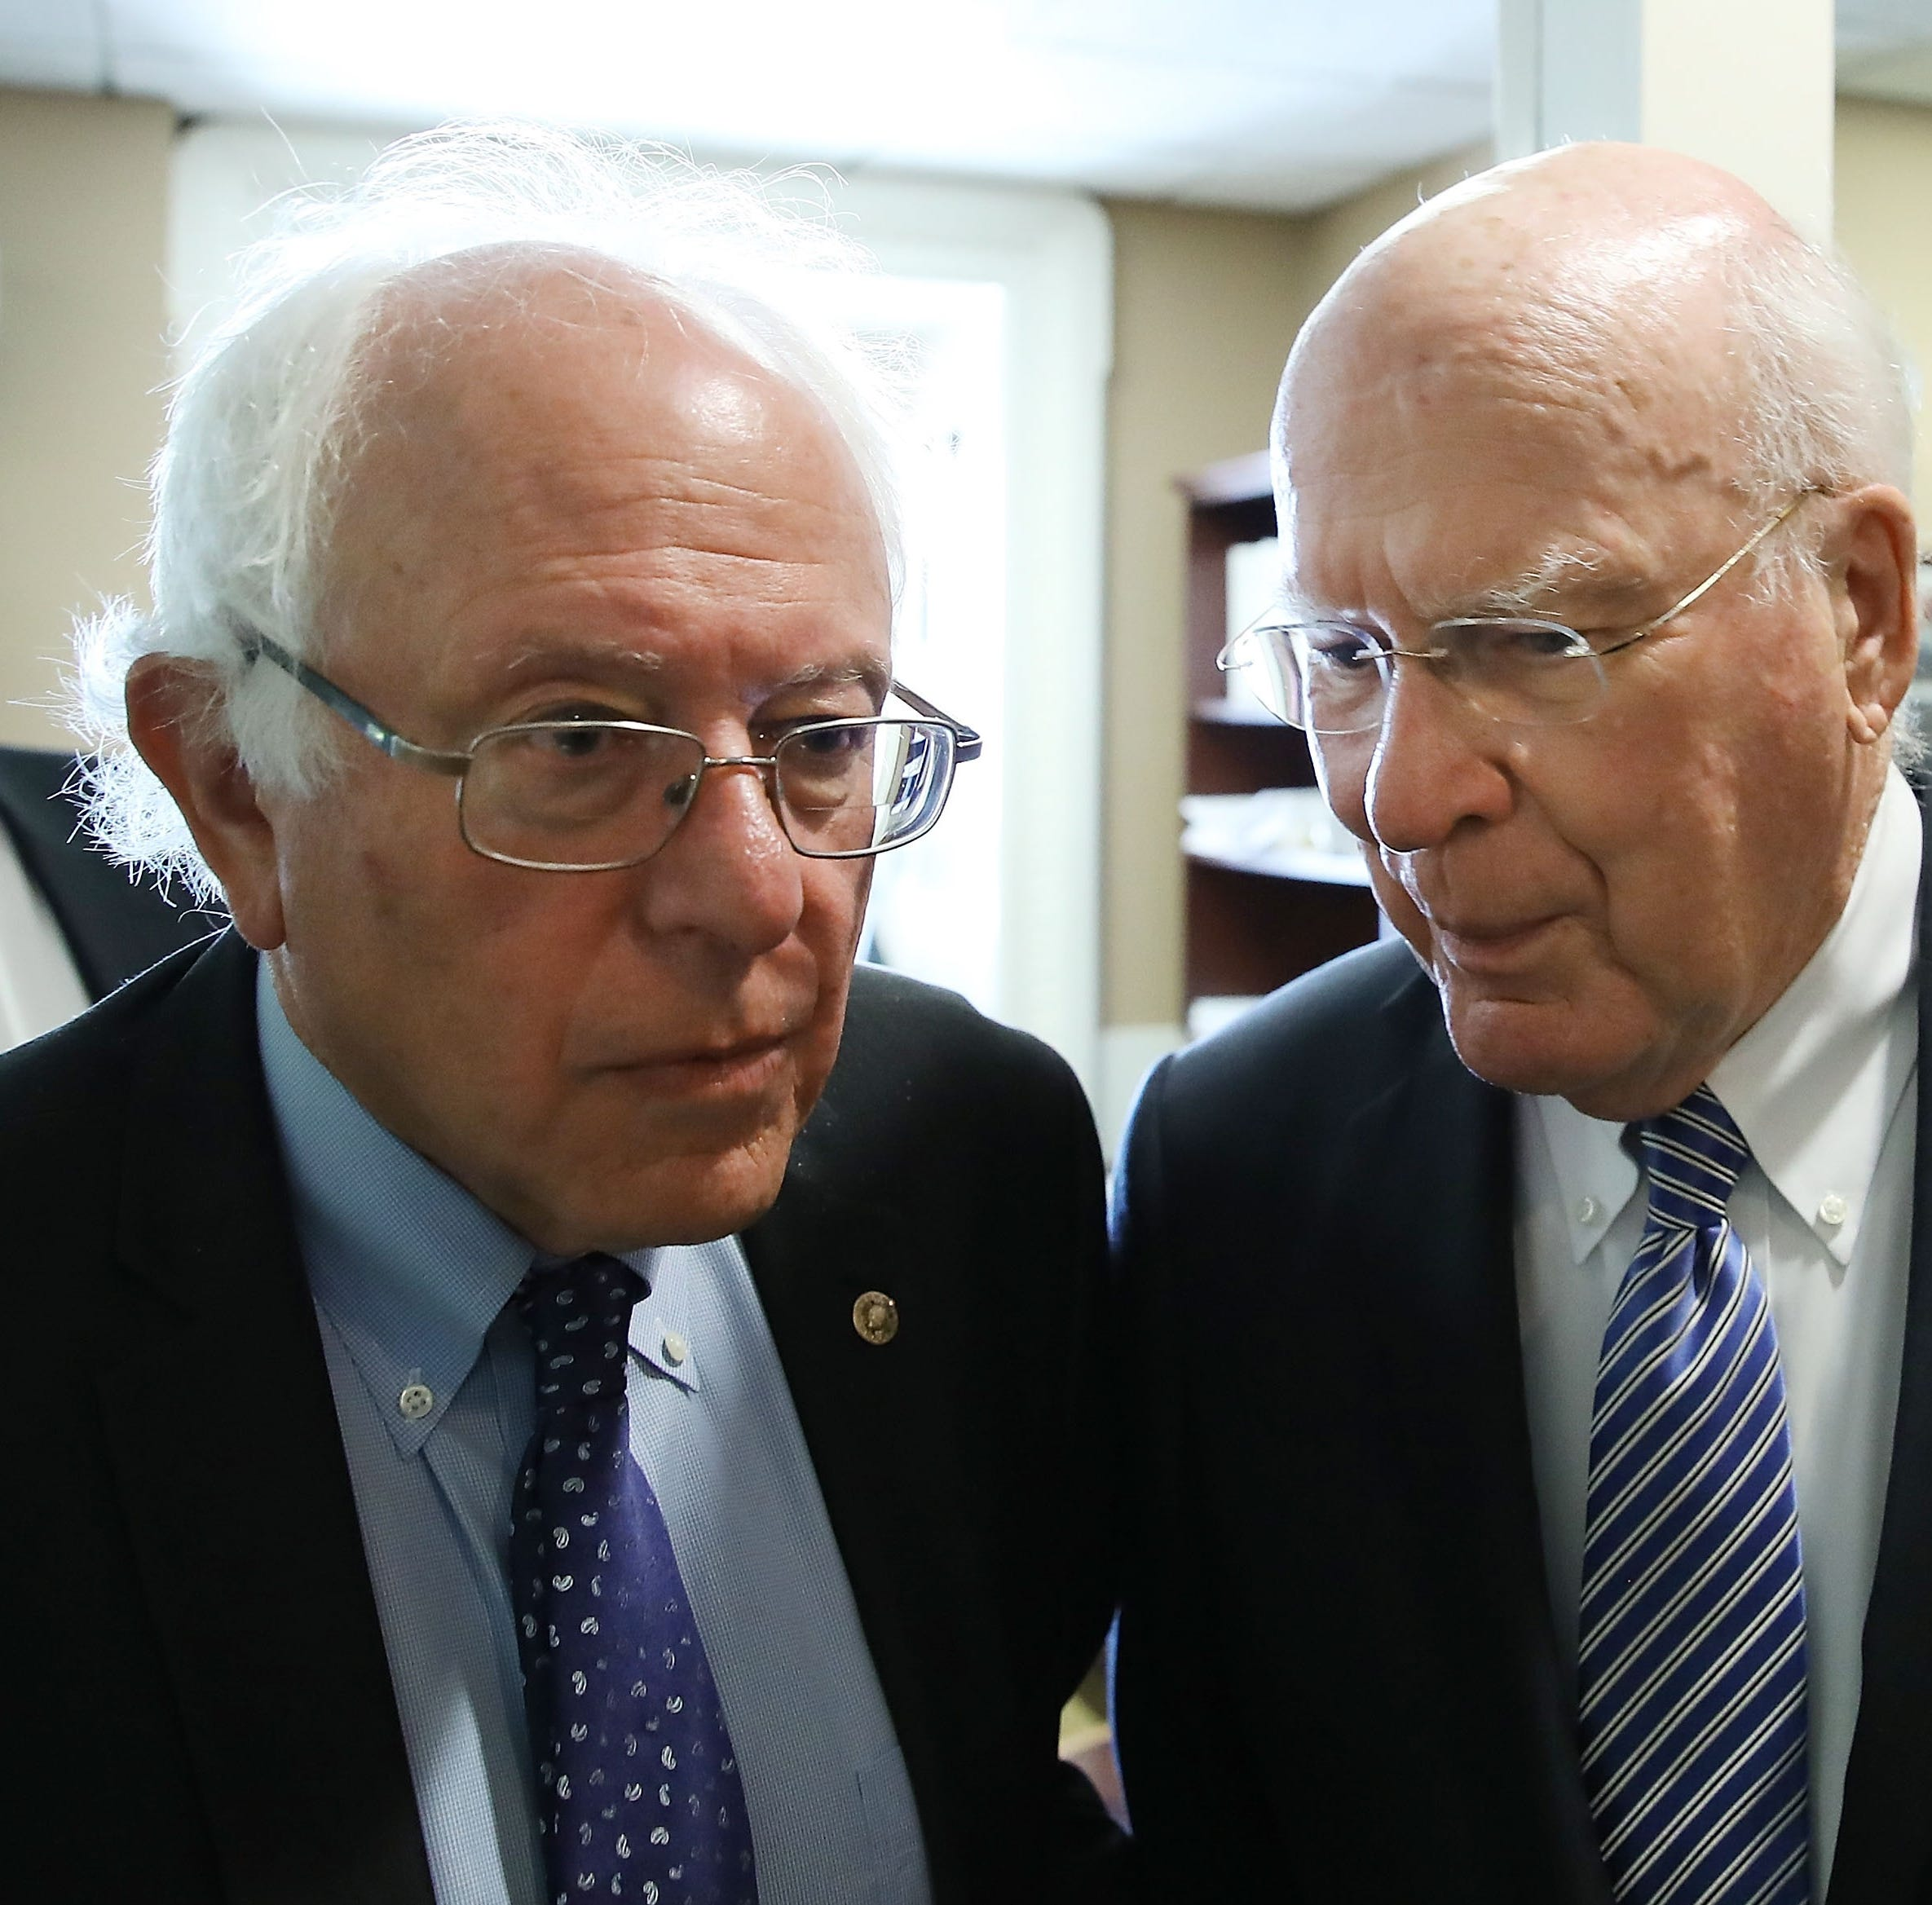 Sen. Bernie Sanders,  I-Vt., left, and Sen. Patrick Leahy, D-Vt., arrive at a news conference regarding genetically engineered food labeling, on Capitol Hill, July 6, 2016 in Washington, DC.